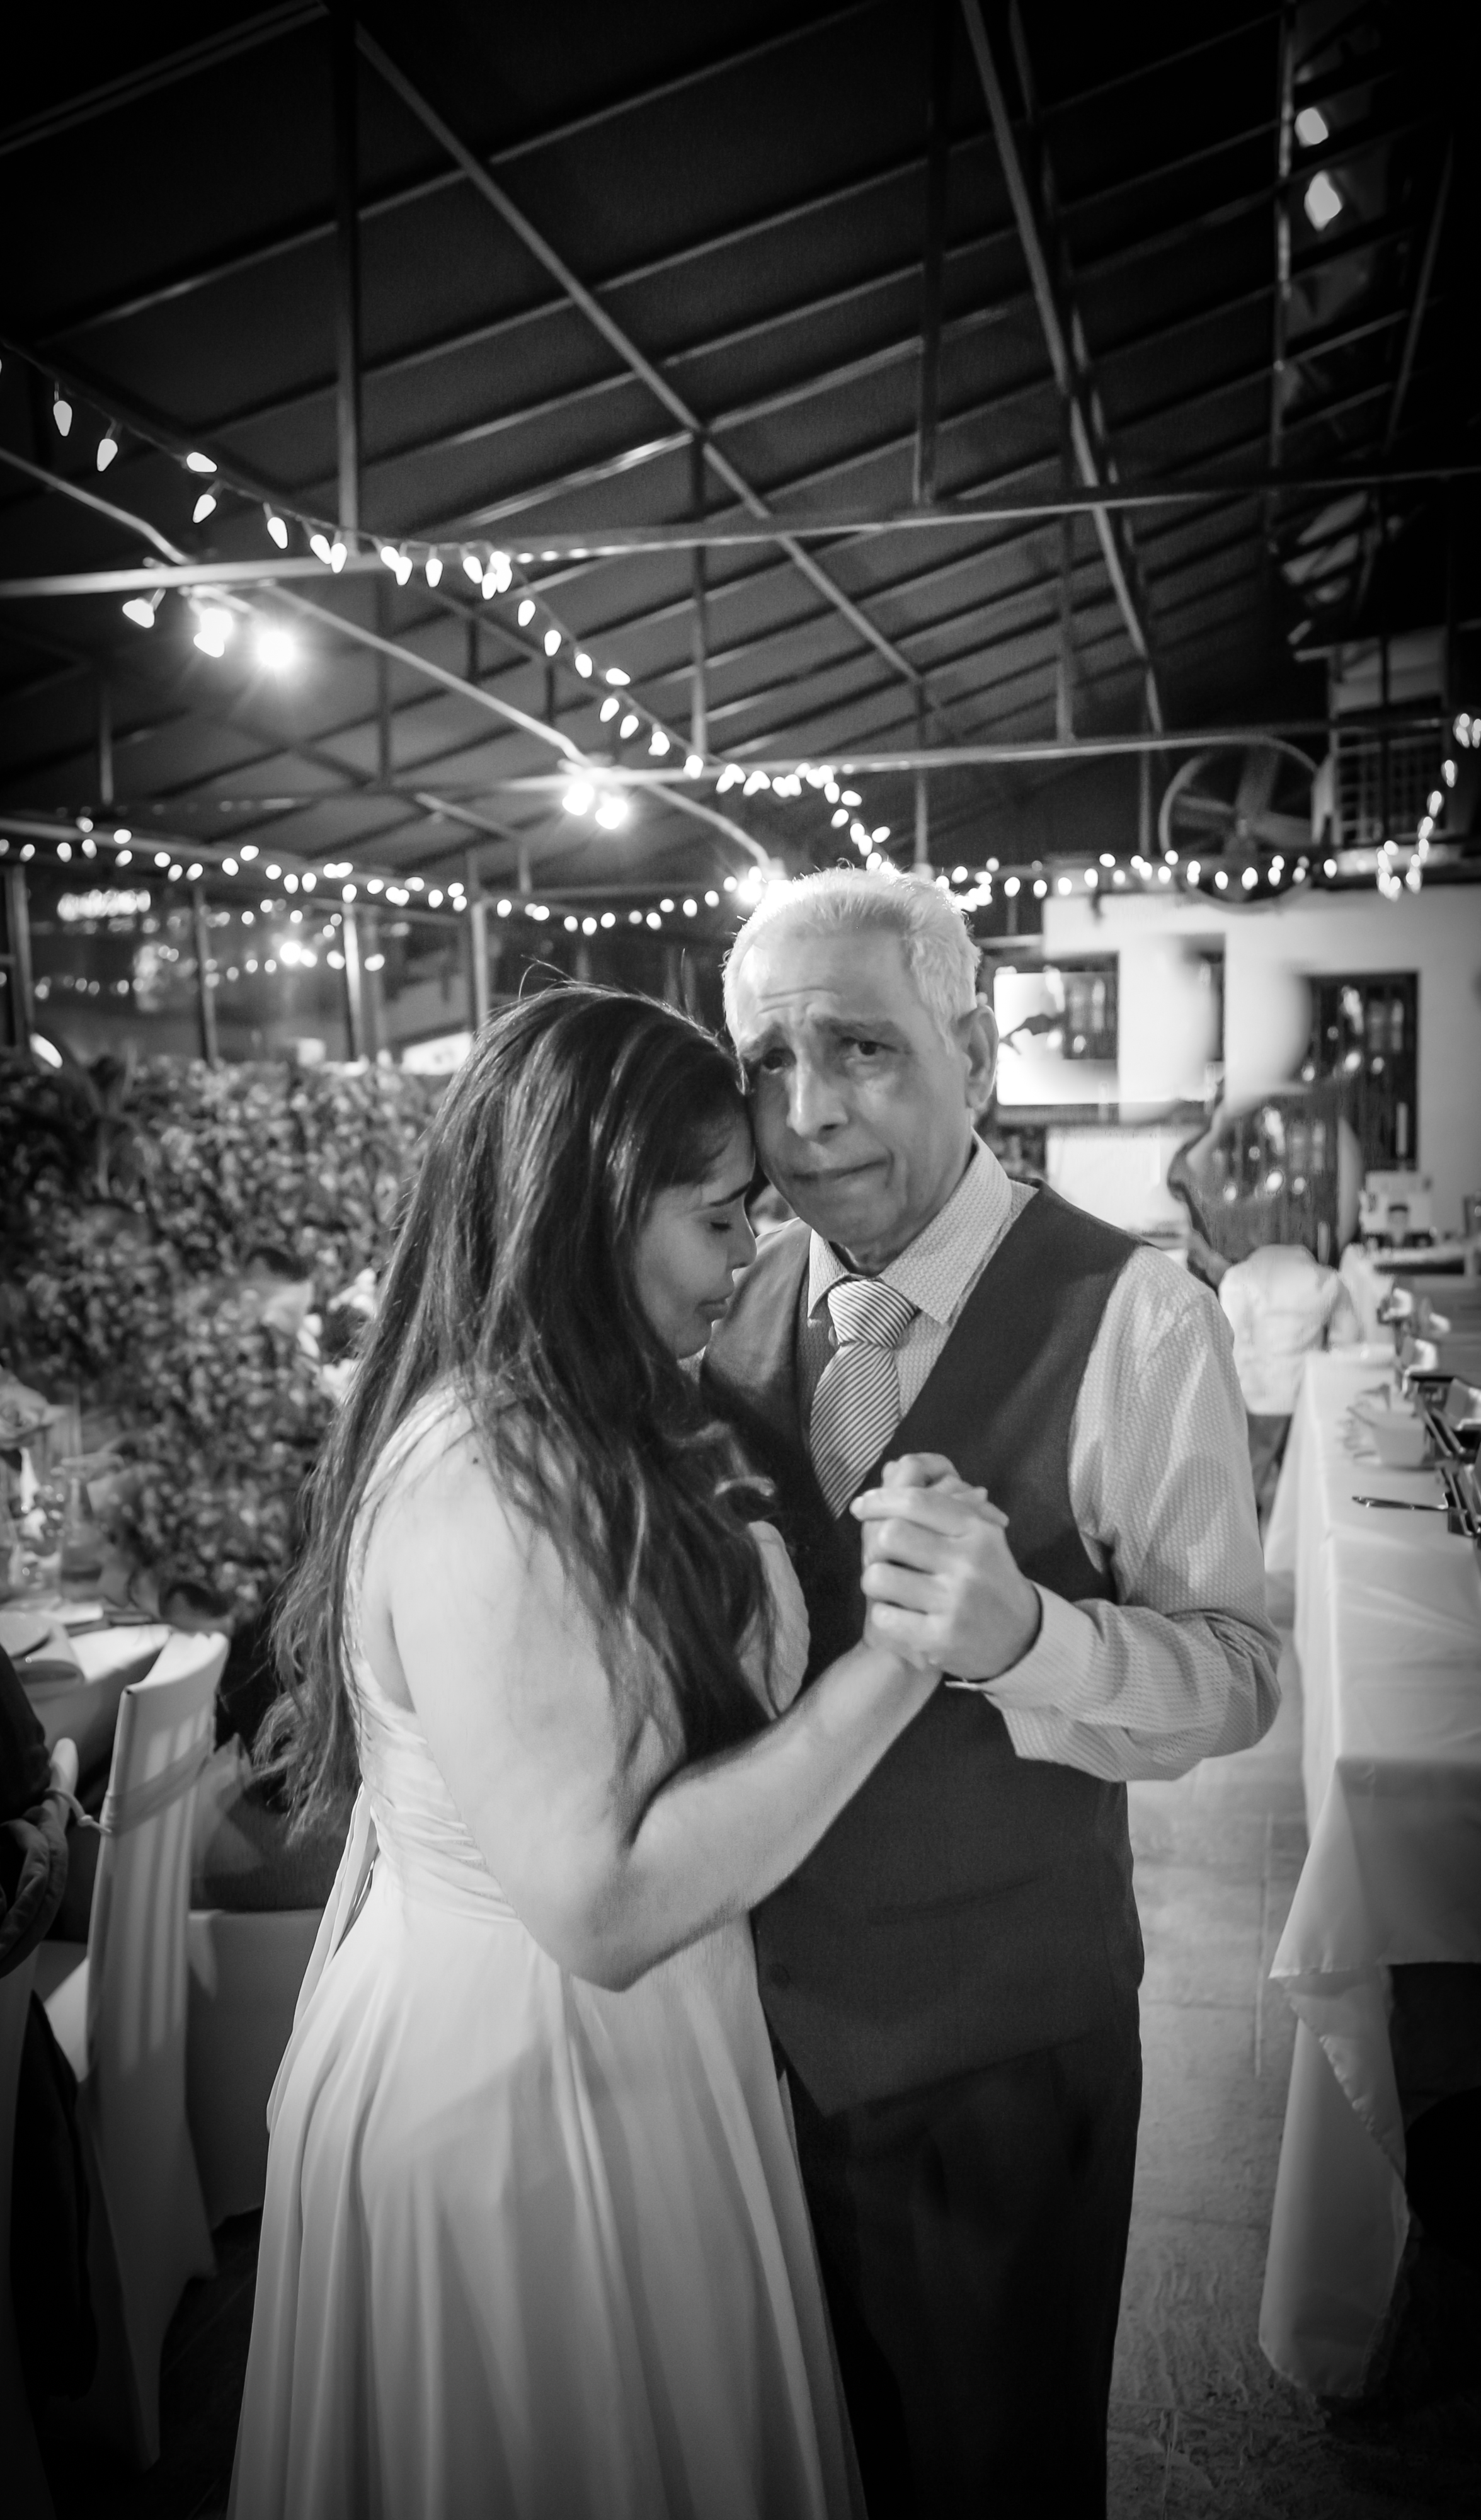 father and daughter dance